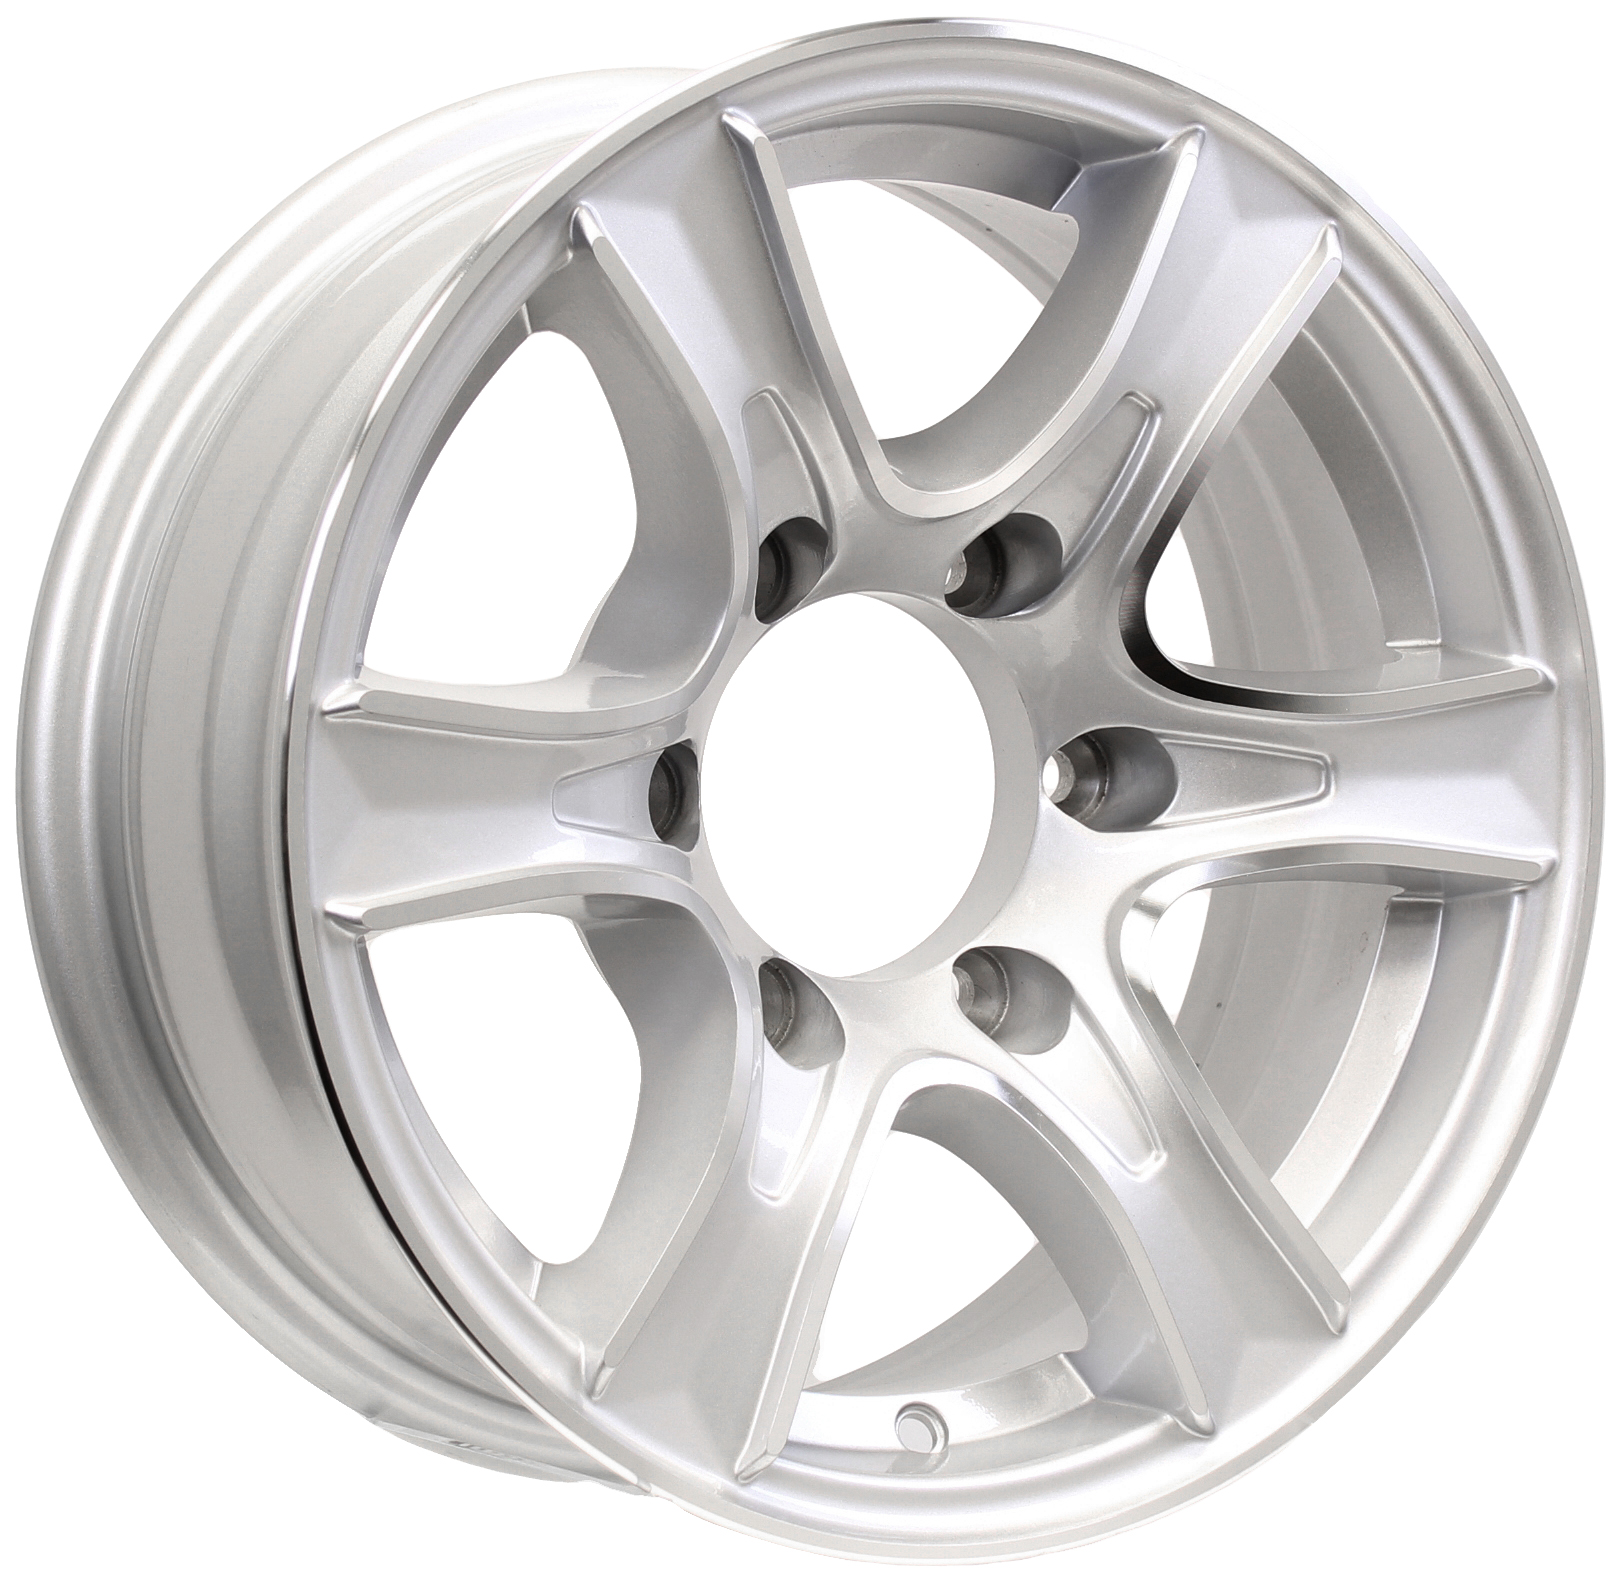 Thoroughbred- 15x6 6-Lug Silver Aluminum Trailer Wheel Image